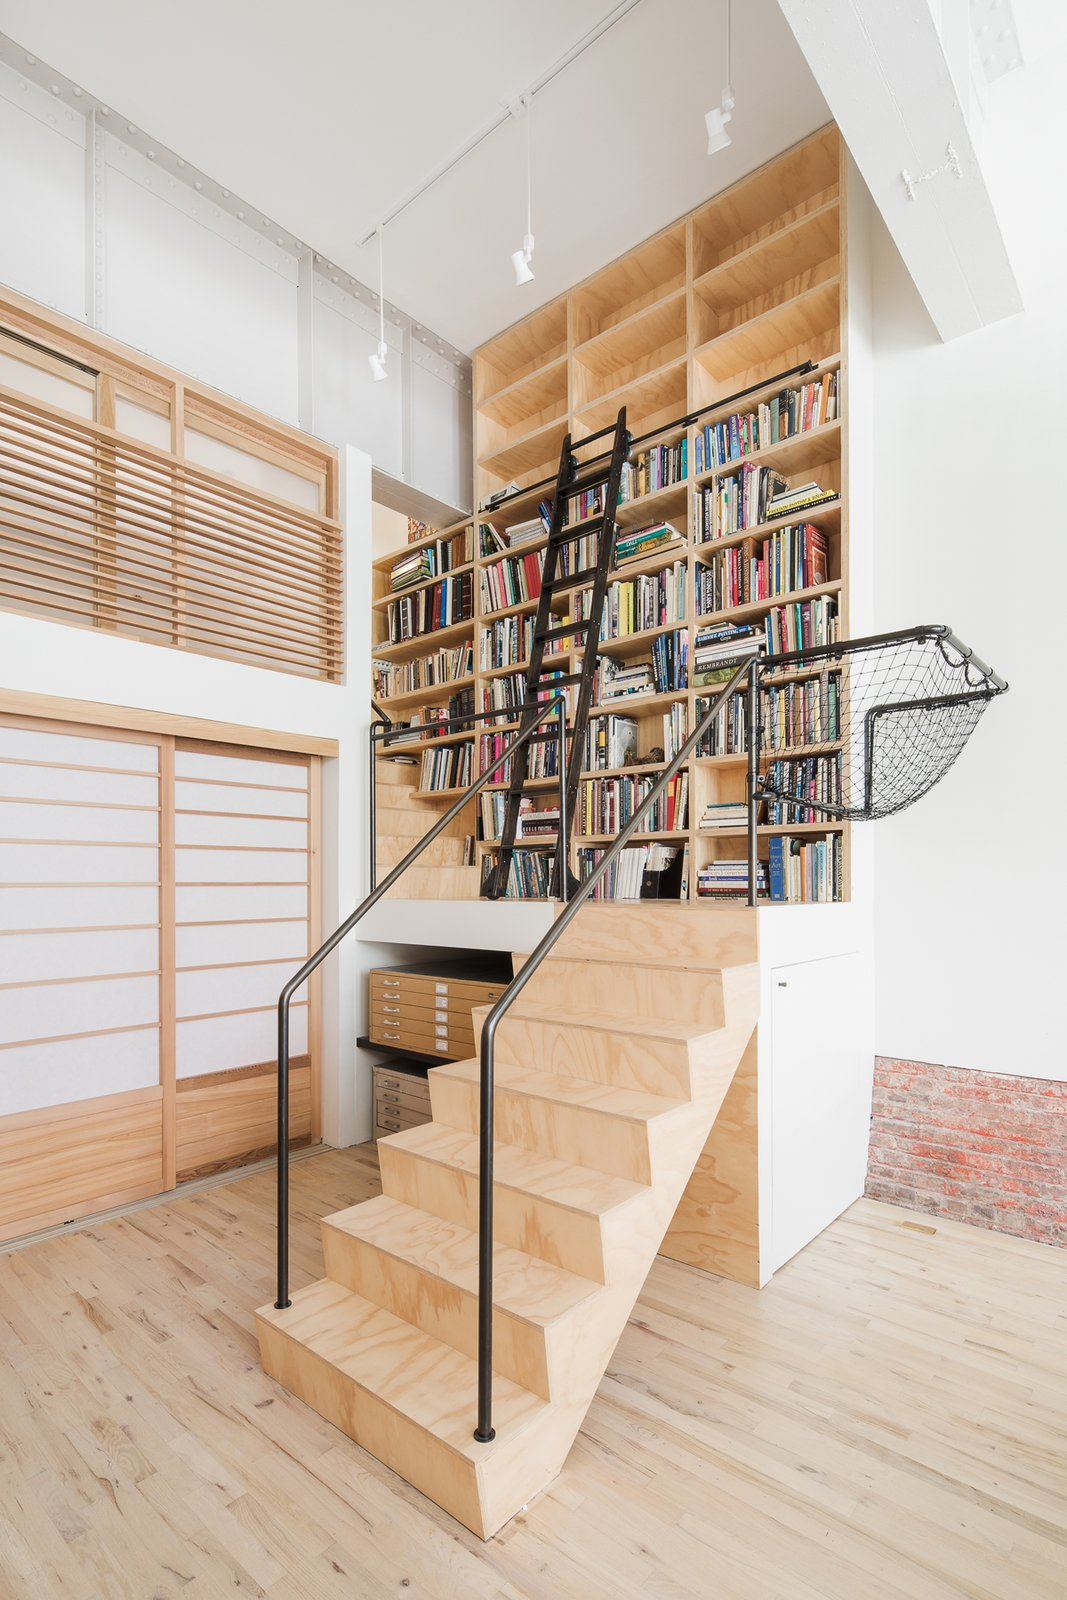 Stair leading to loft bedroom and library Tagged: Office, Library, Craft Room, Study, Storage, Shelves, and Light Hardwood Floor.  Wells Fargo Loft by Jeff Jordan Architects